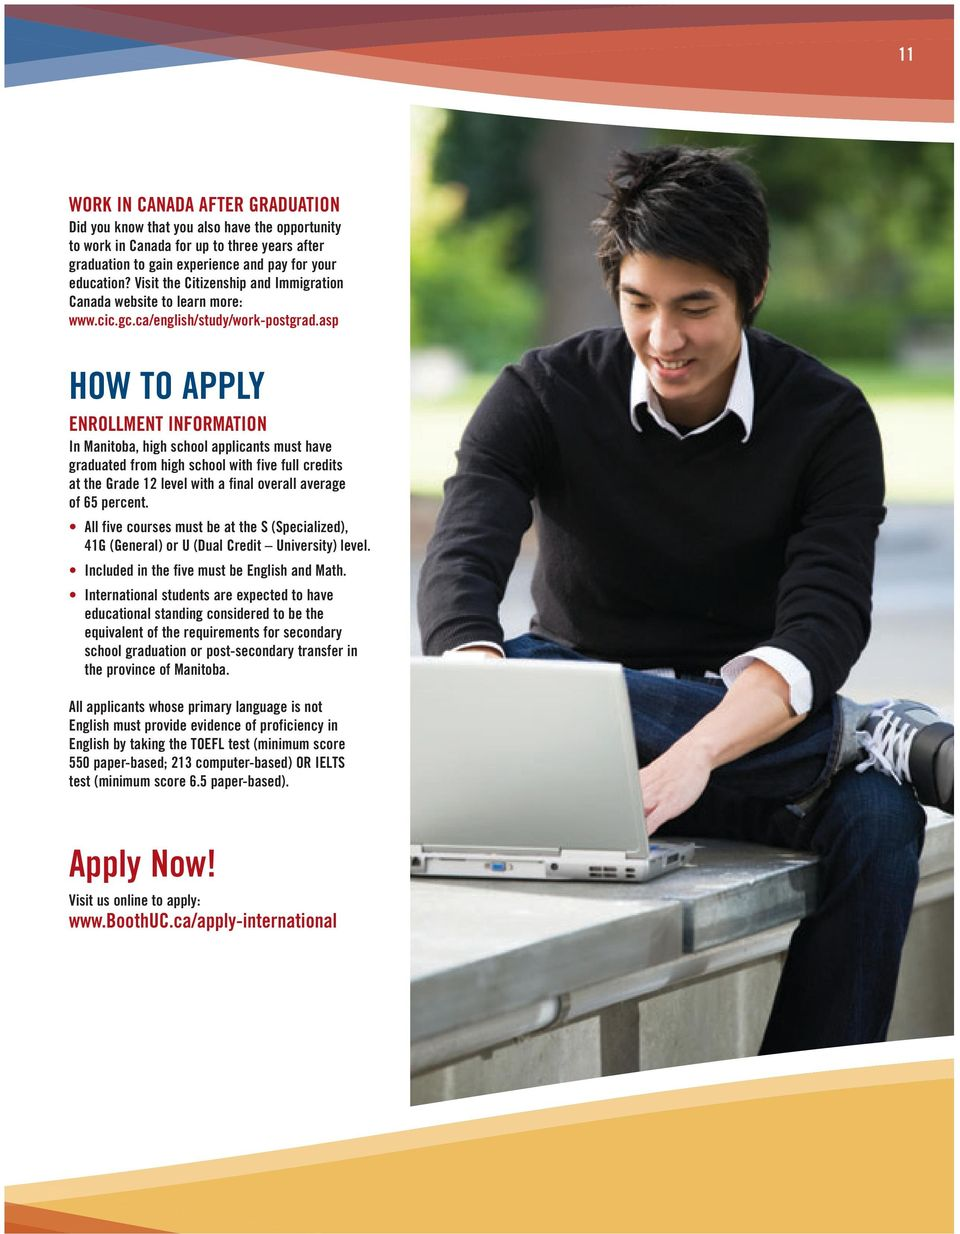 asp HOW TO APPLY ENROLLMENT INFORMATION In Manitoba, high school applicants must have graduated from high school with five full credits at the Grade 12 level with a final overall average of 65